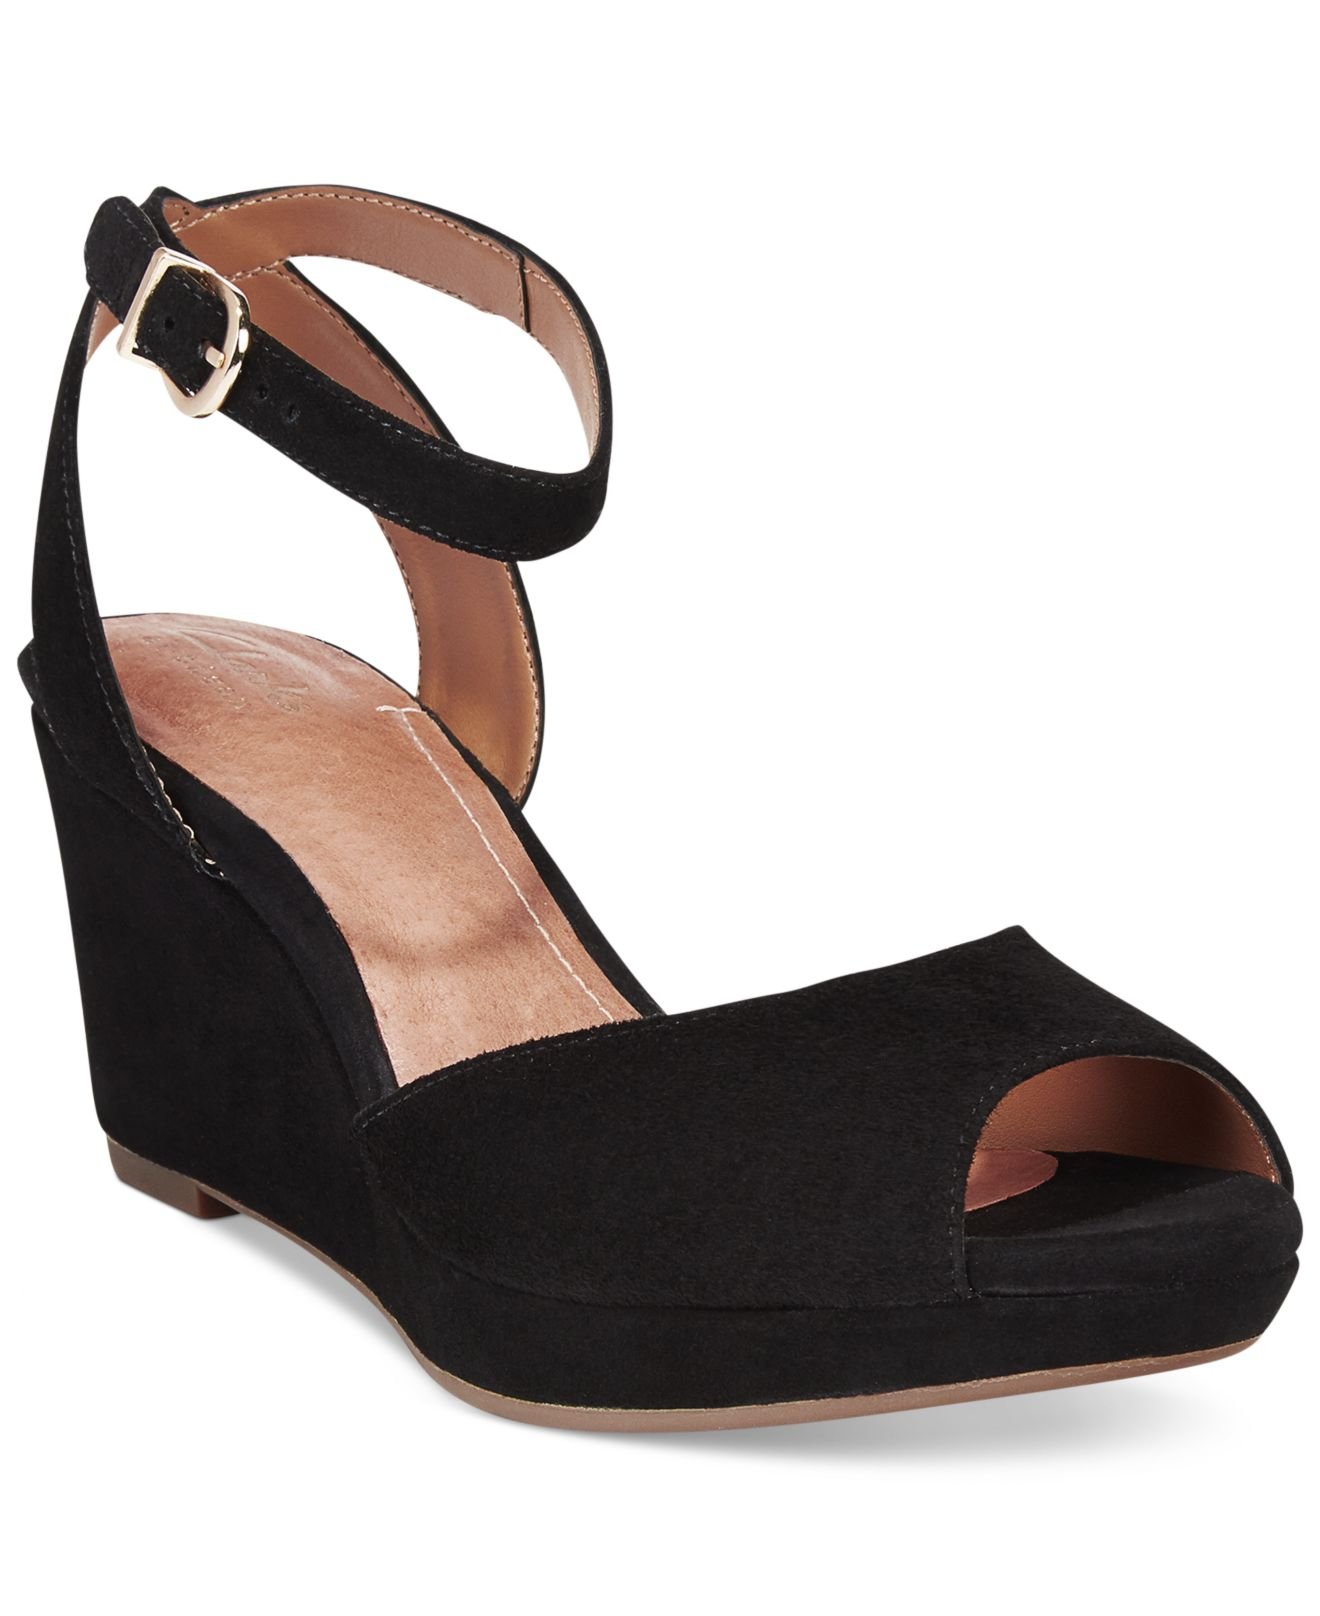 Clarks sandals shoes sale